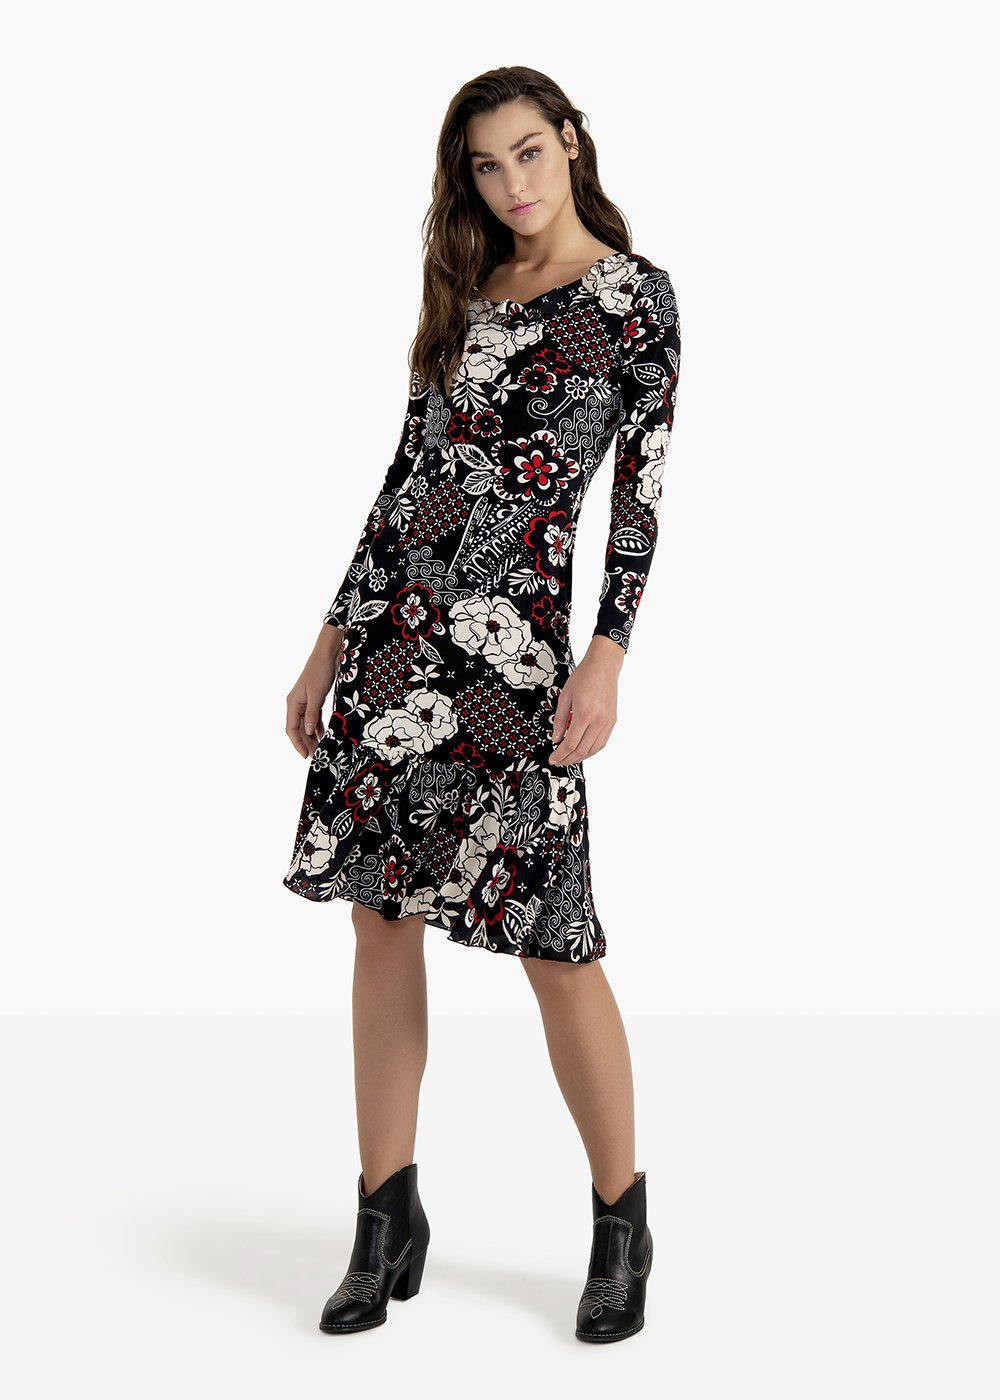 Alexios dress with V-neck and flounce at the bottom